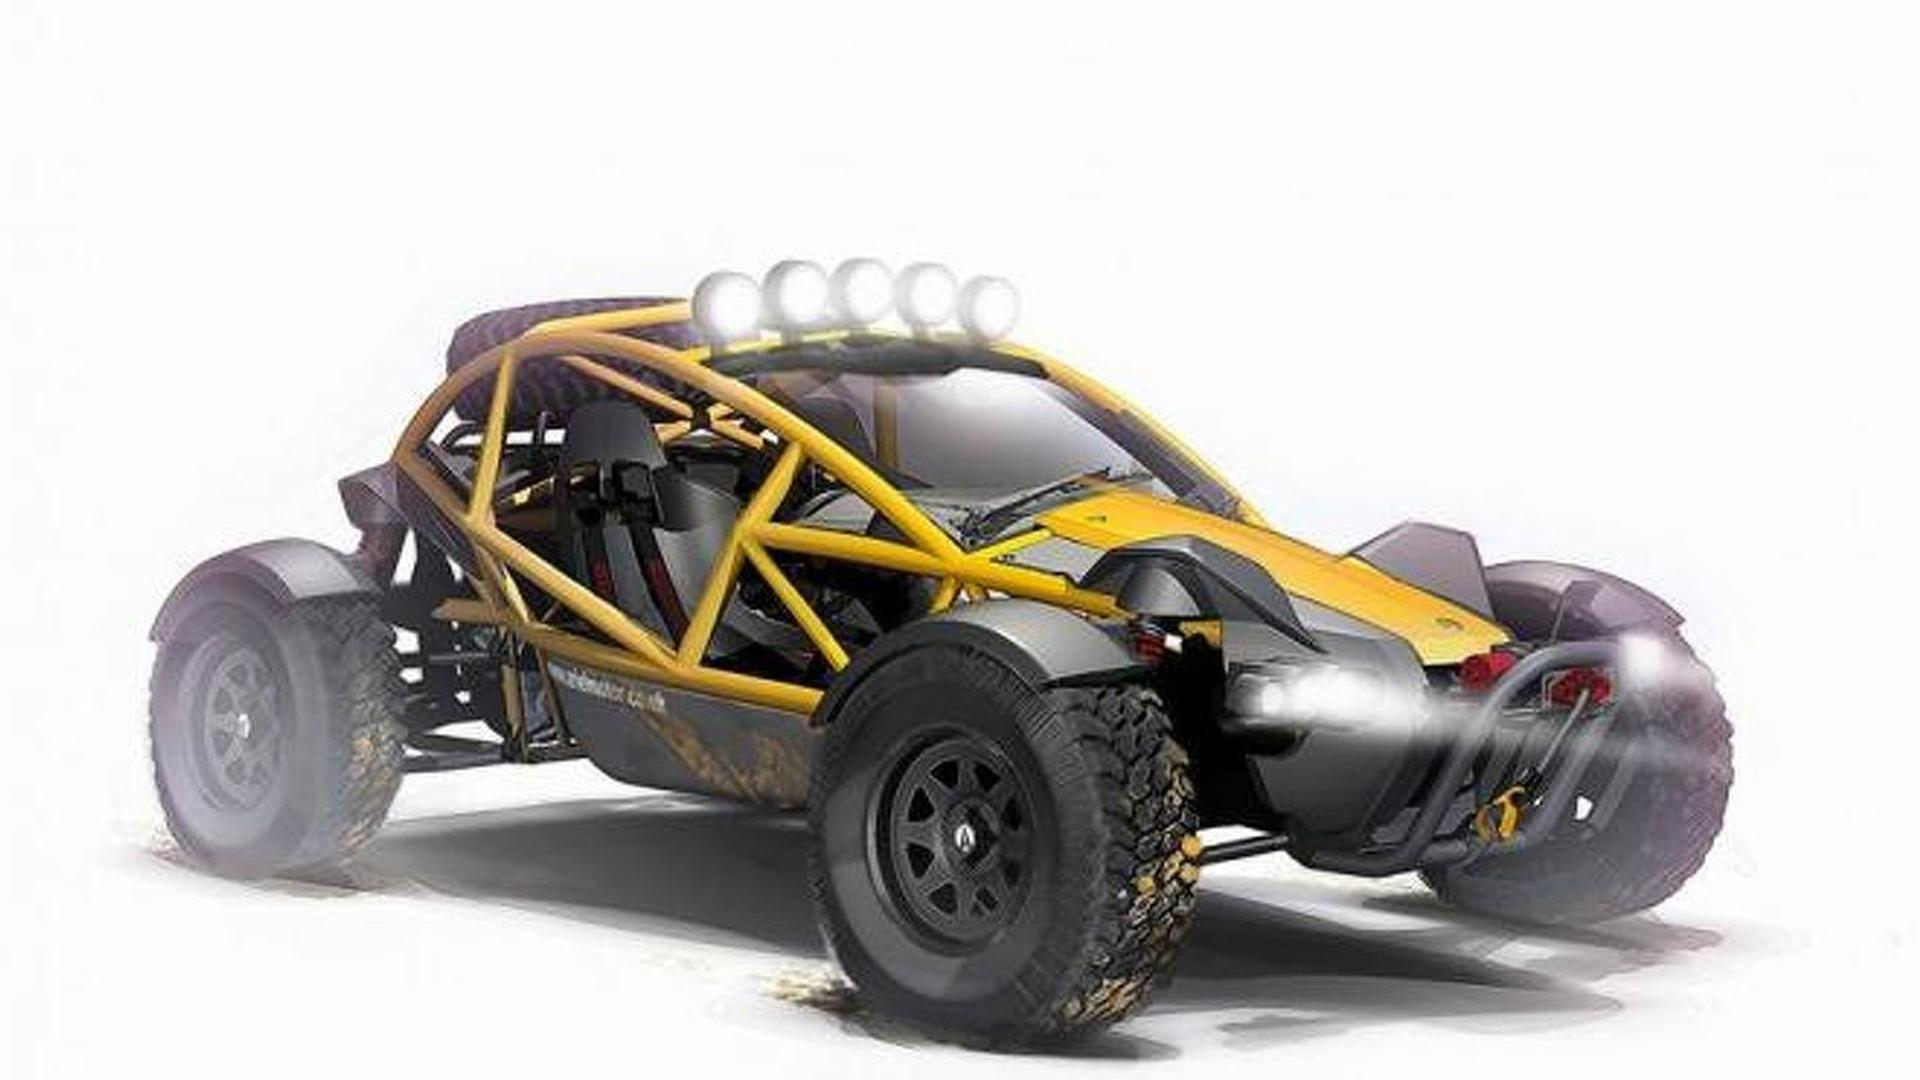 Ariel Nomad off-roader unveiled ahead of Autosport debut